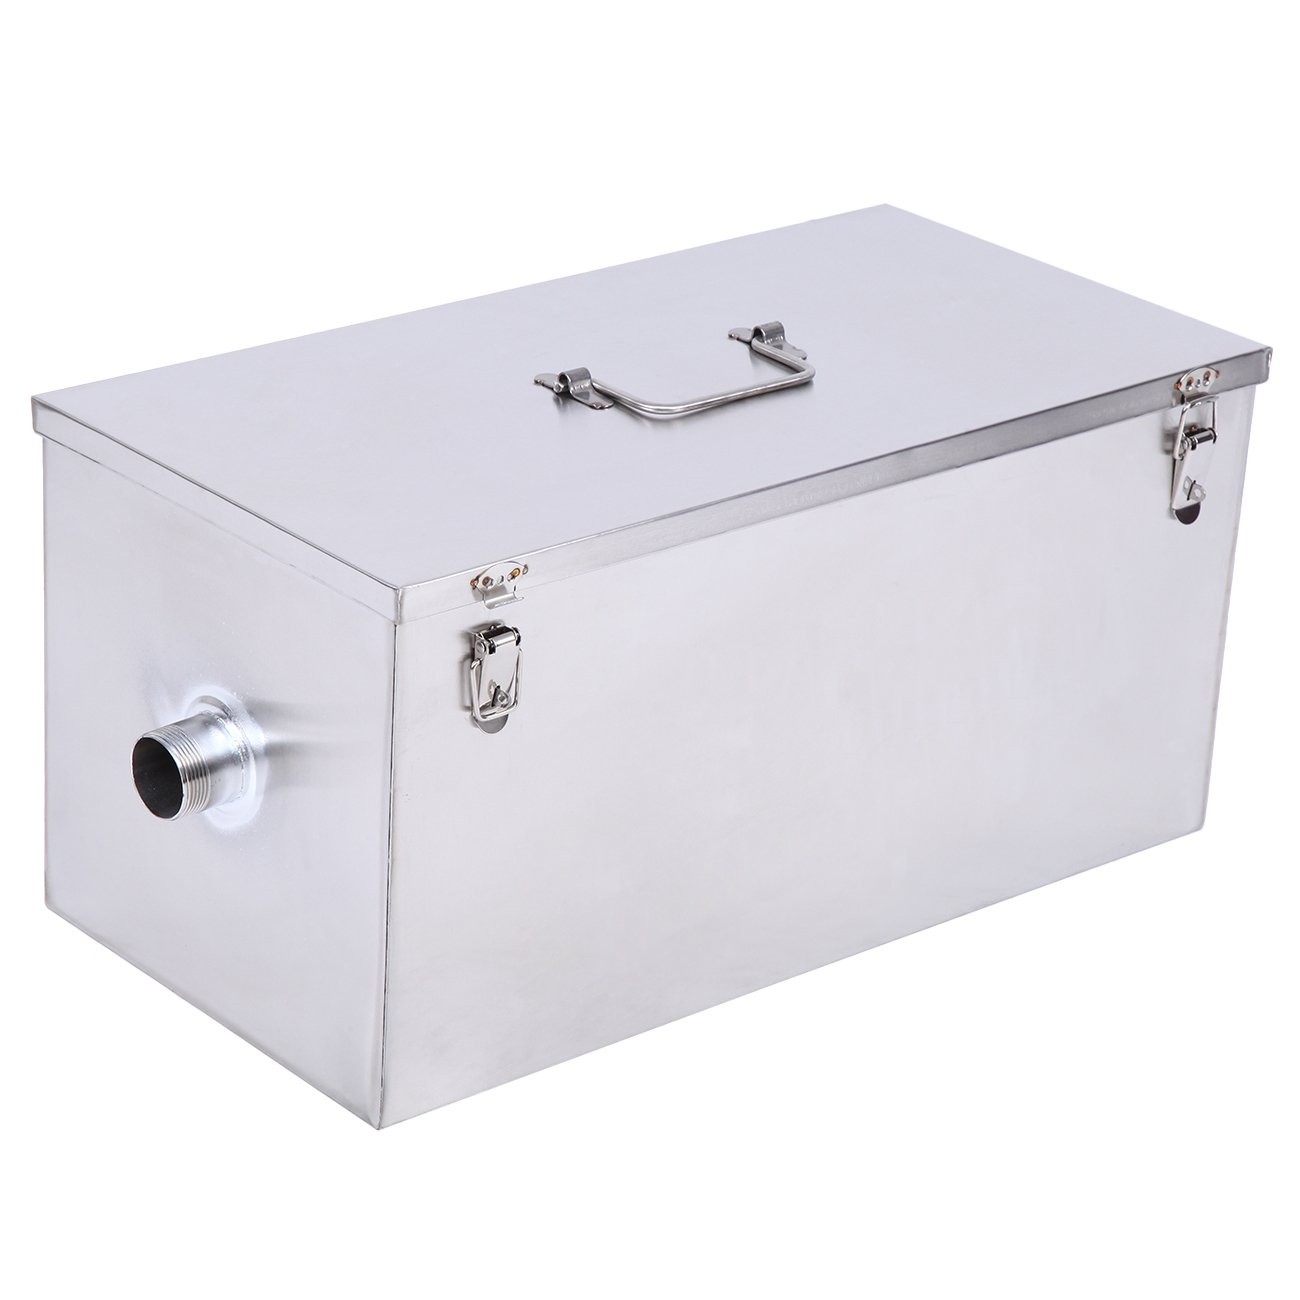 XuanYue Commercial Grease Trap 25 LB 13GPM Gallon Per Minute Stainless Steel Grease Interceptor Kitchen Kit for Restaurant Factory and Home